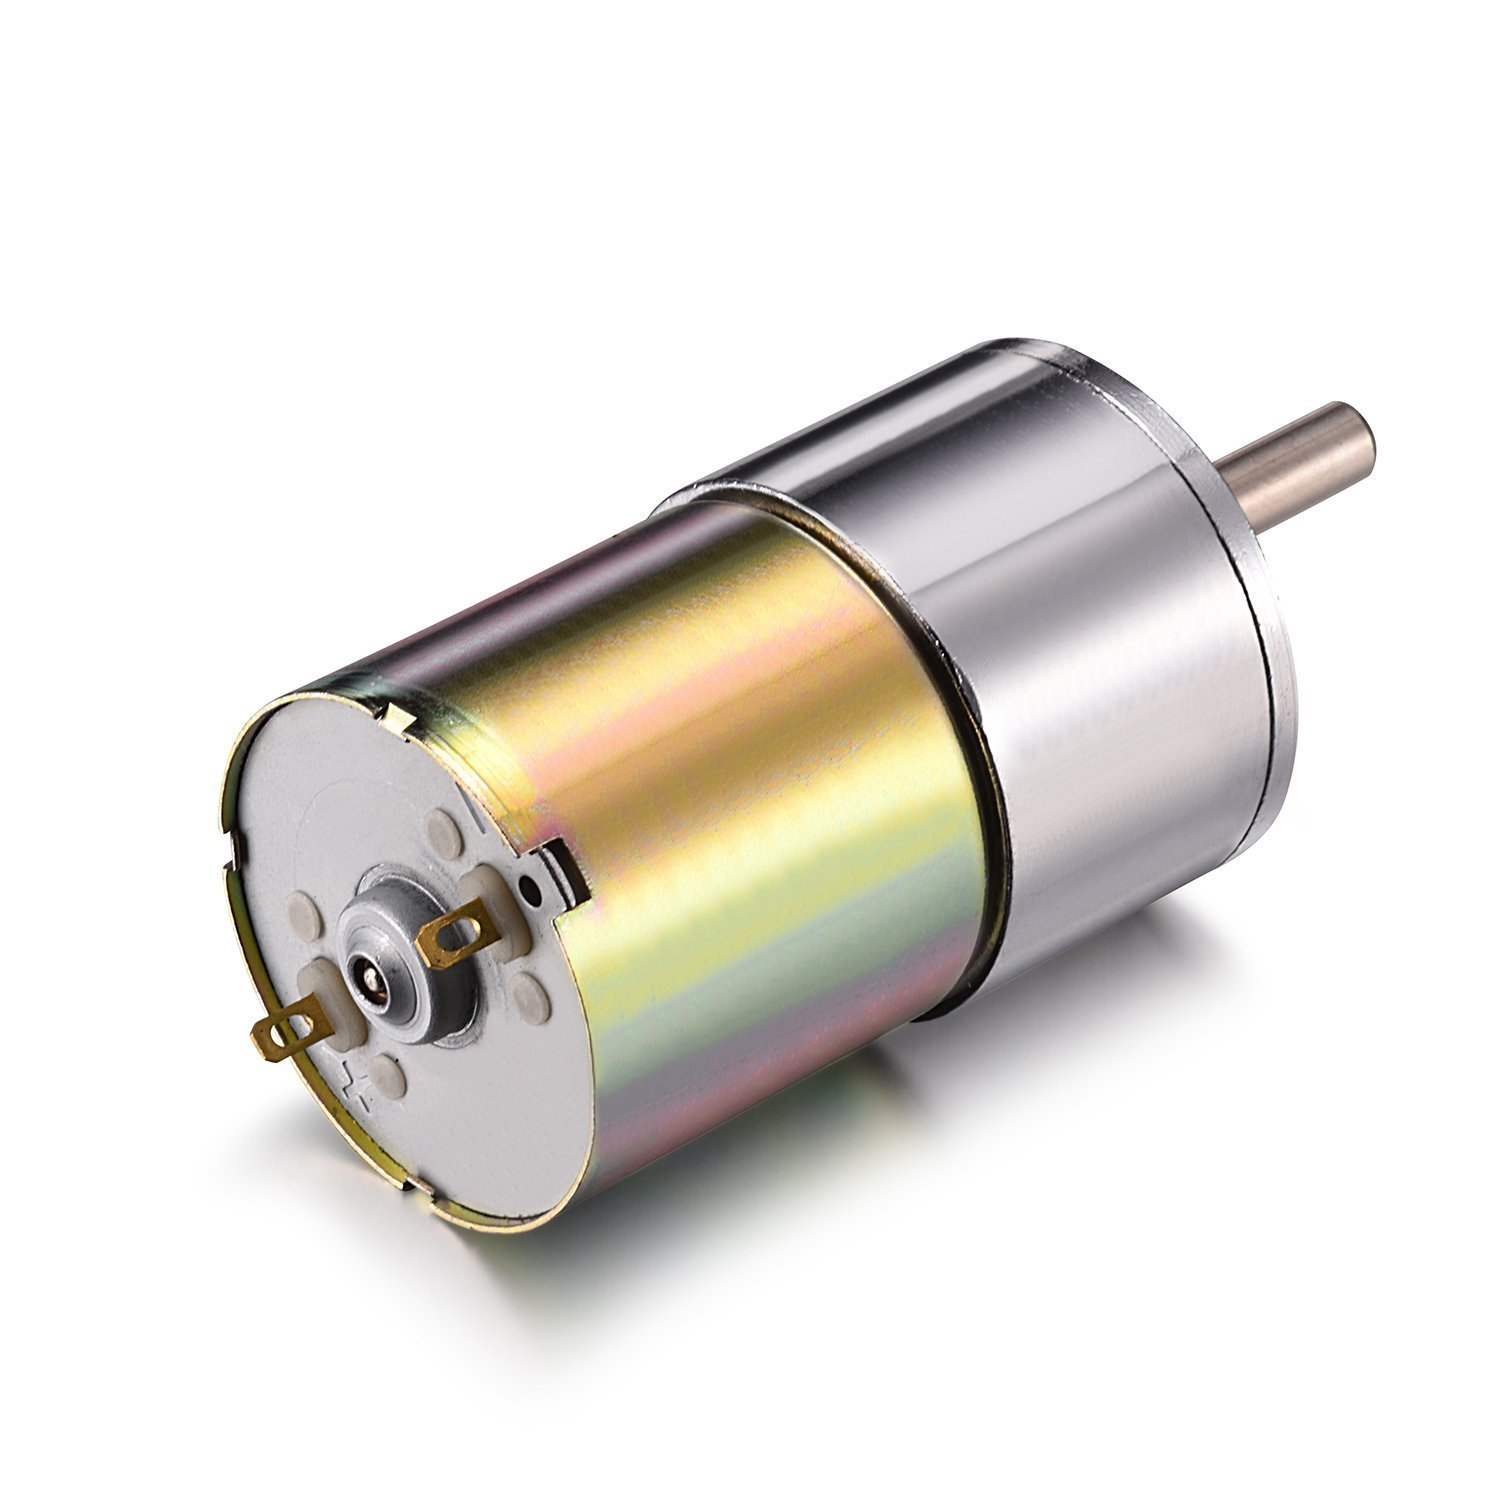 12V DC 5RPM Speed Adjustable Reversible Gear Motor 147Ncm High Torque Electric Reduction Gearbox Eccentric Output Shaft 37mm Diameter Gearbox